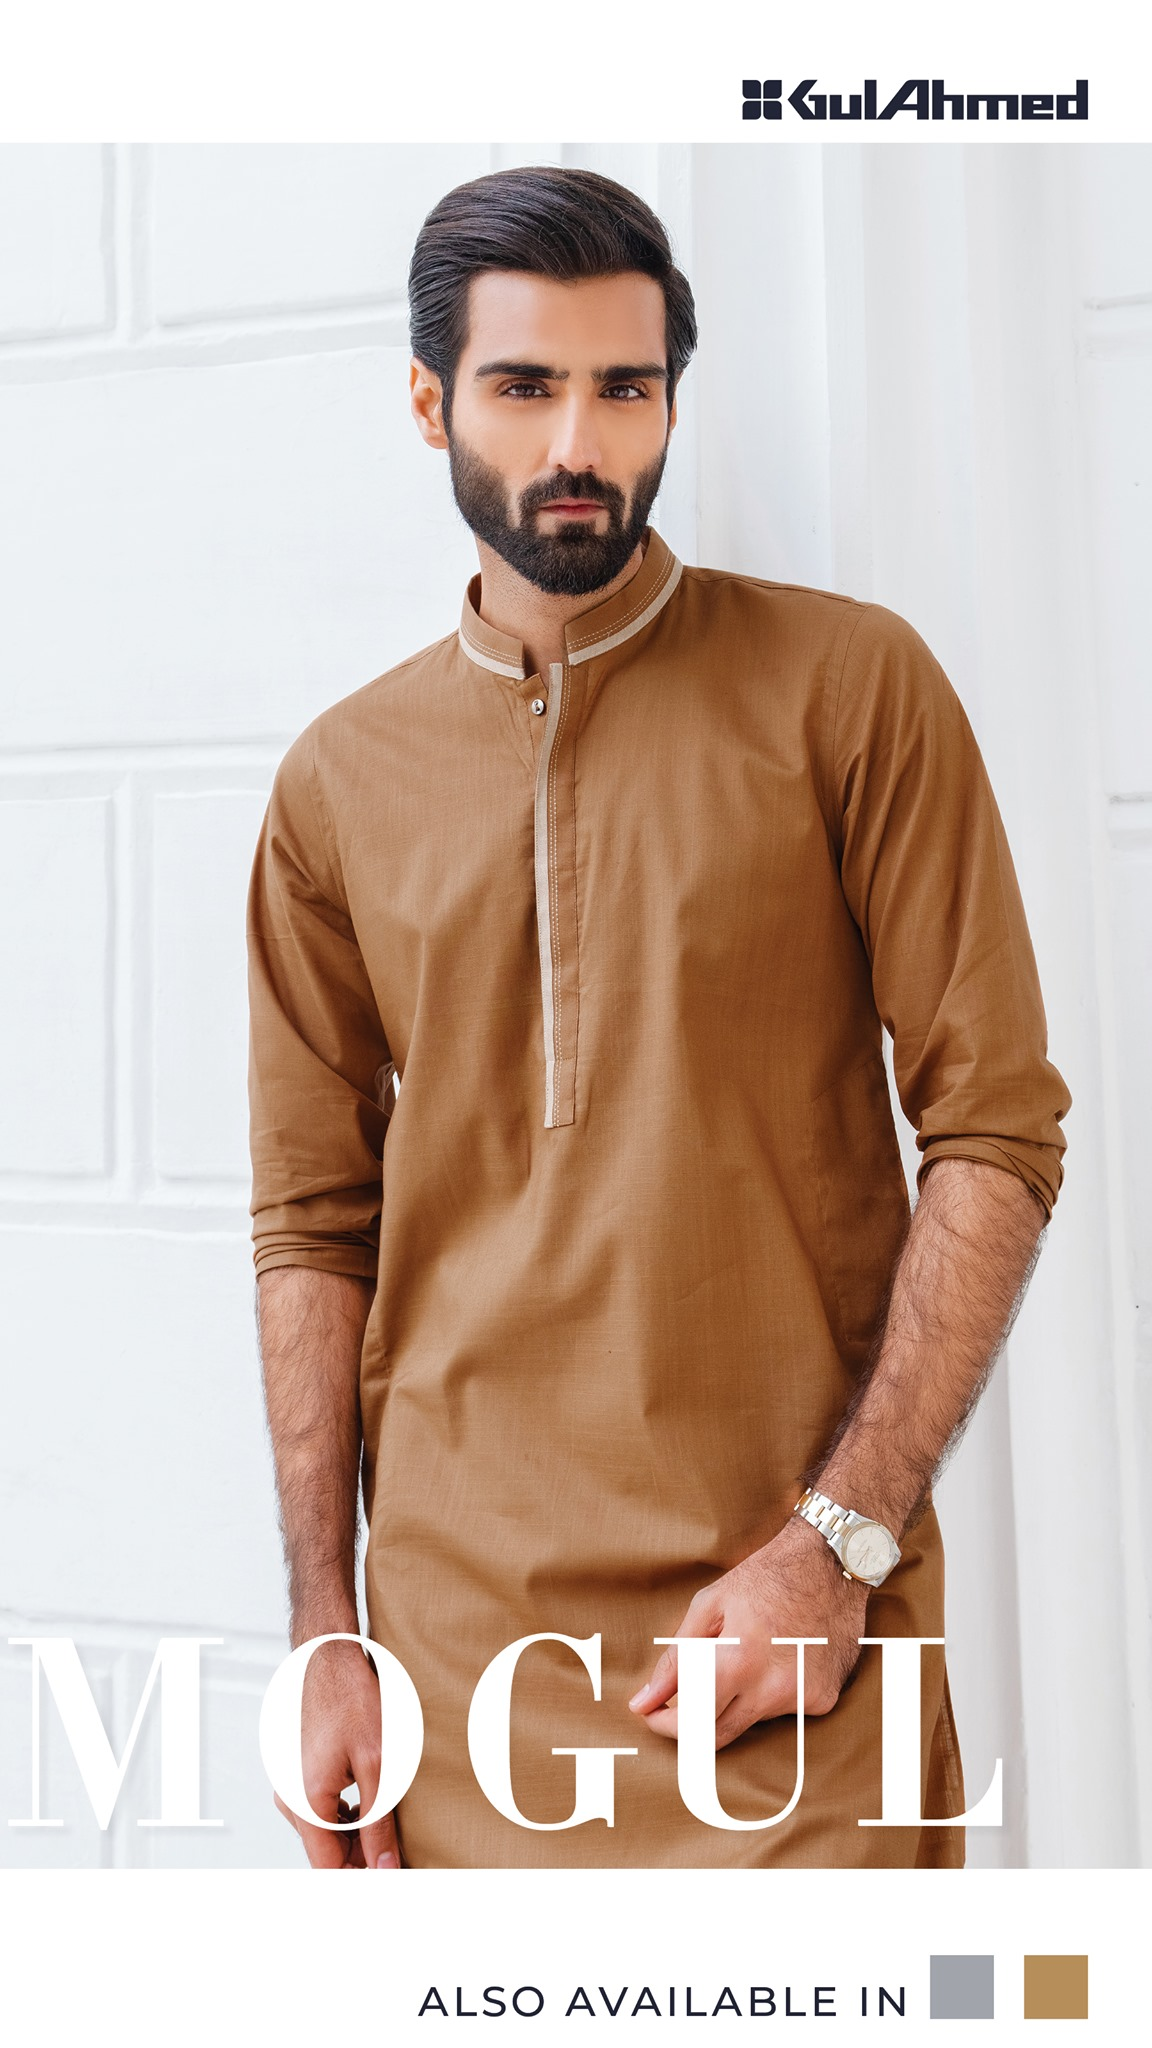 Mens Wear Luxury Ambassador Collection 2021 By Gulahmed (13)